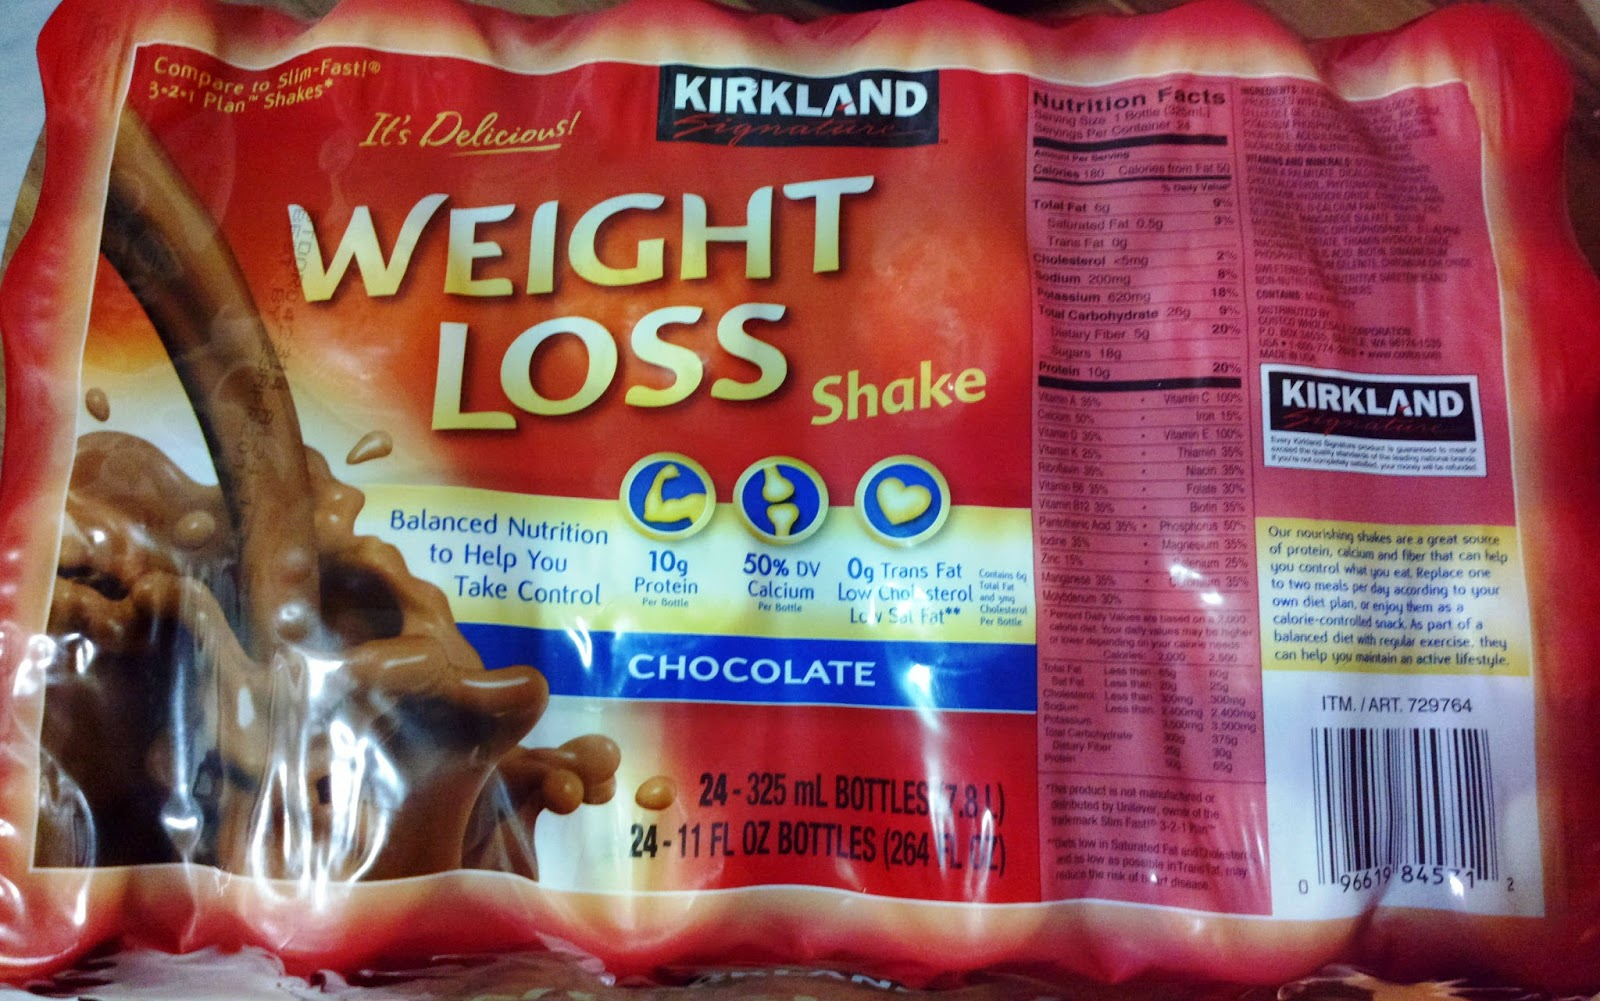 Kirkland Weight Loss Shake